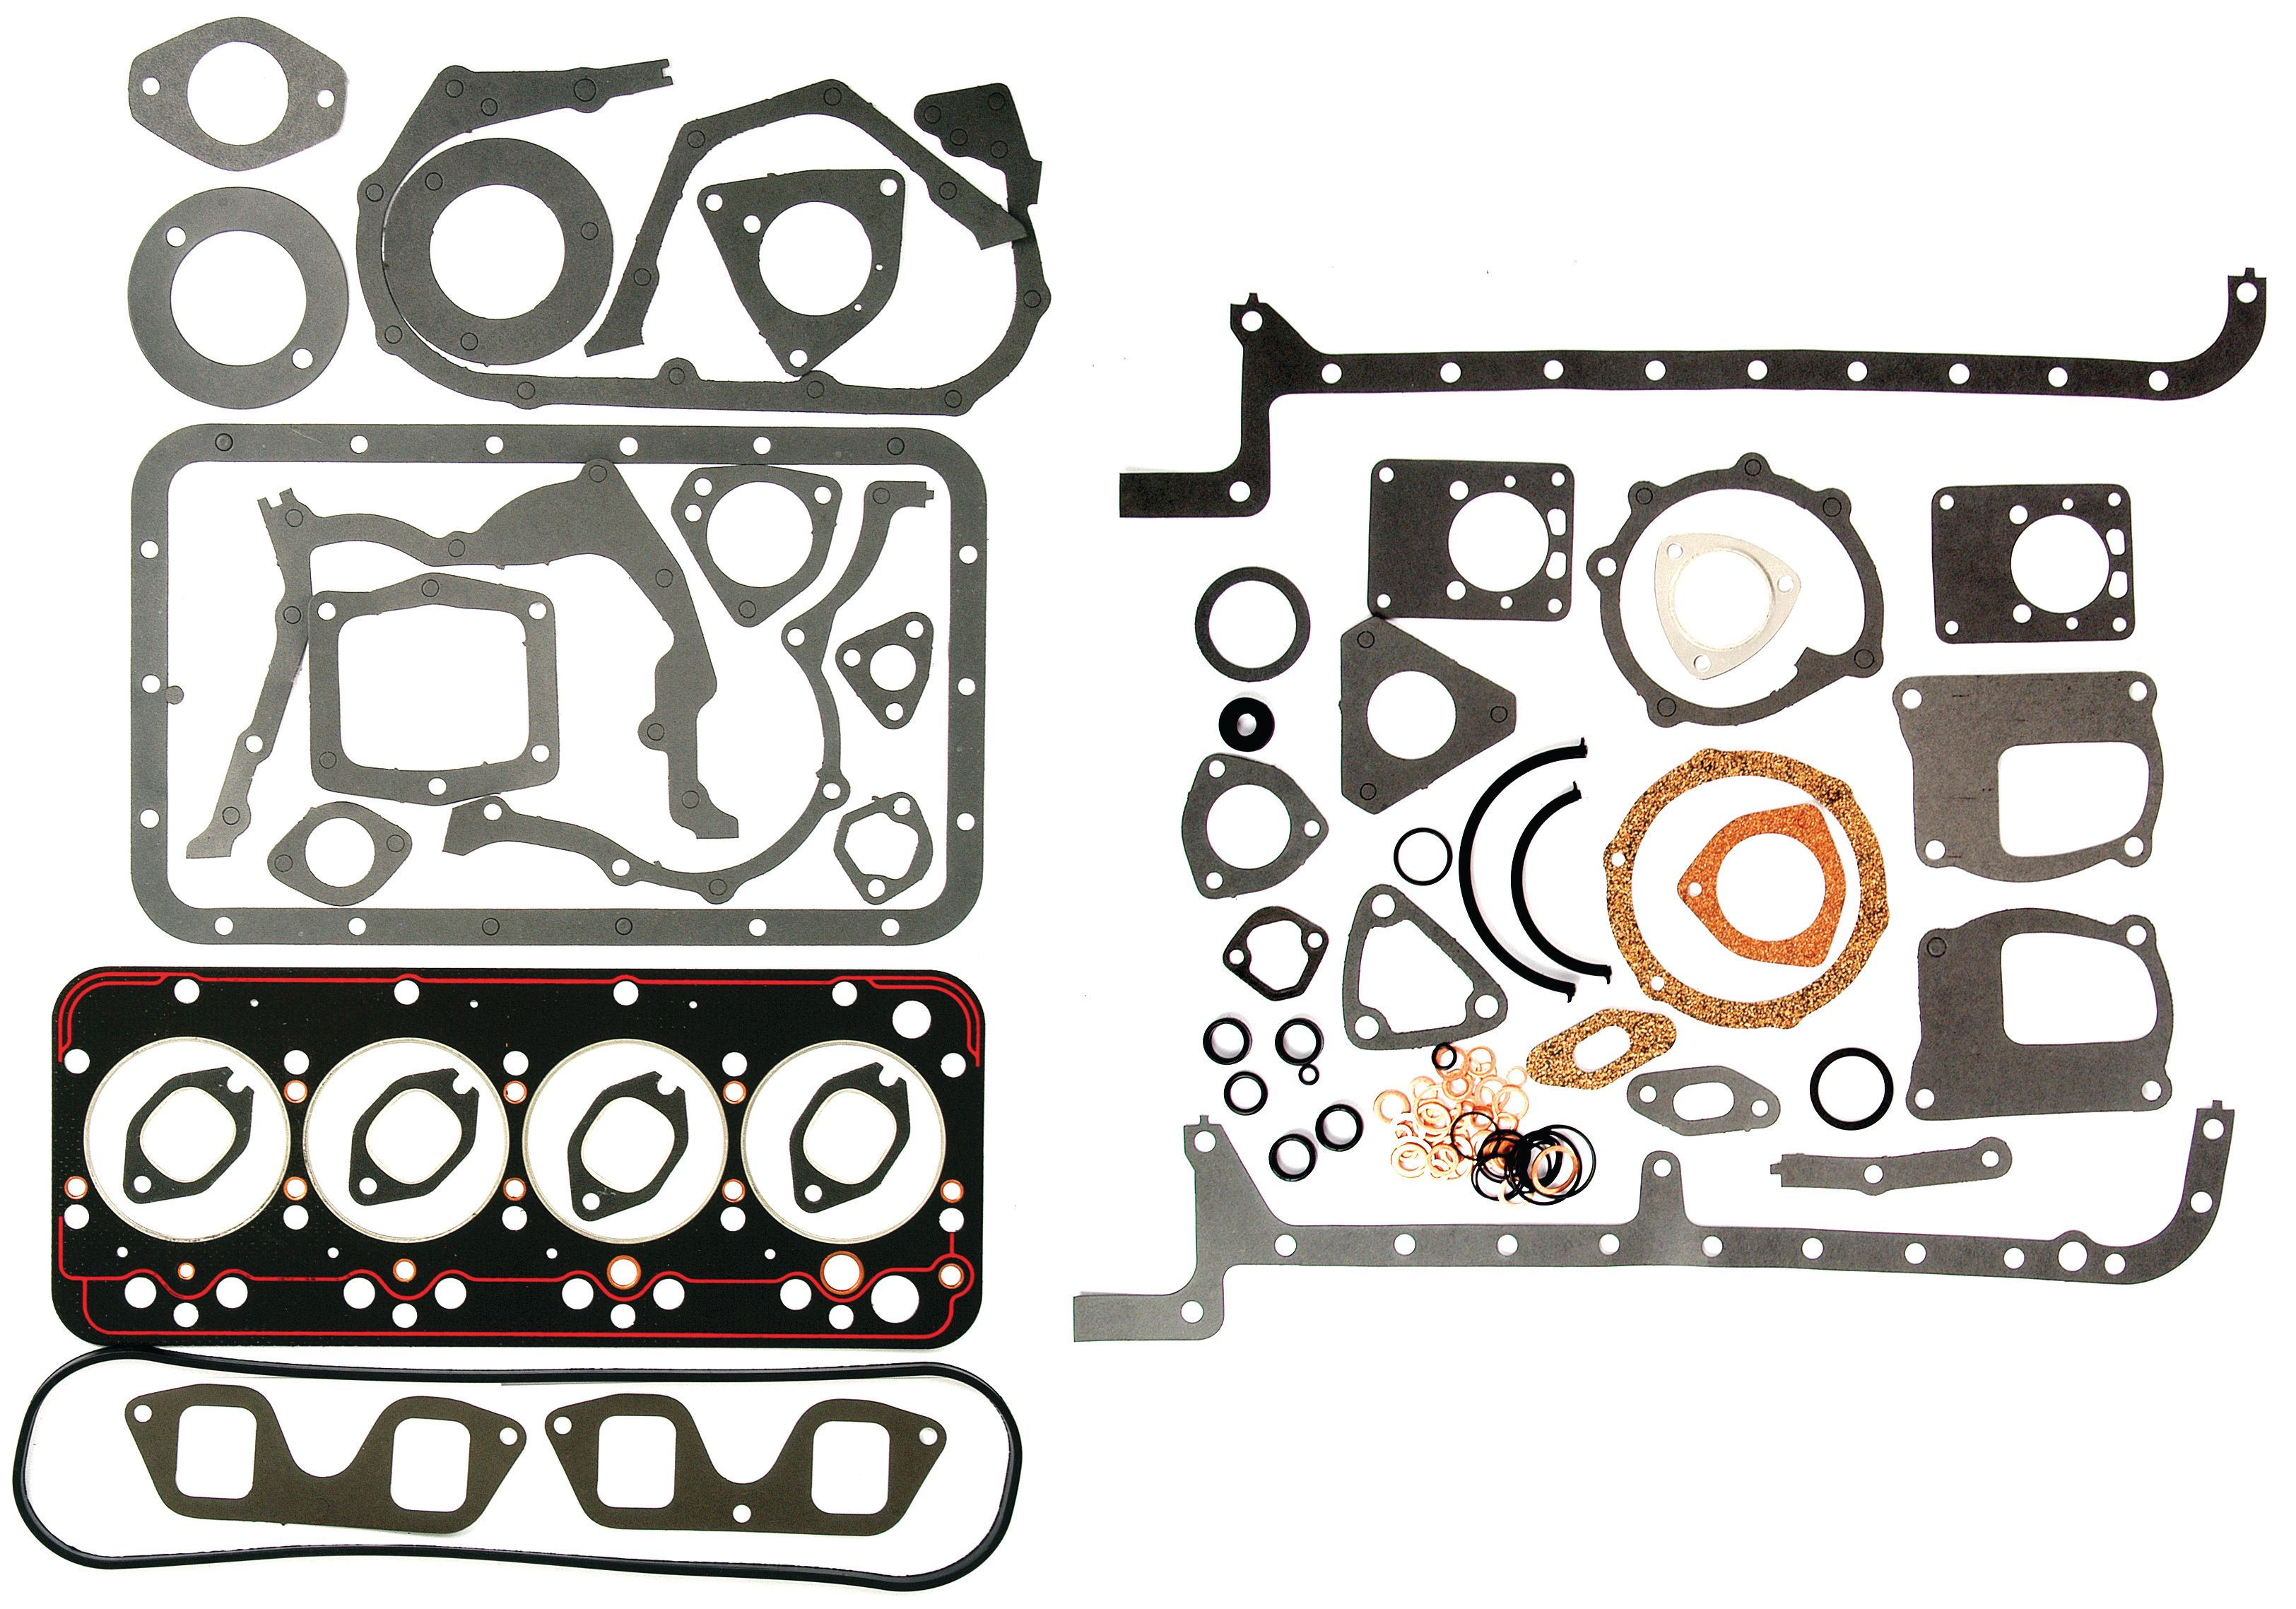 WHITE/OLIVER GASKET SET-FULL W/O SEALS 62085